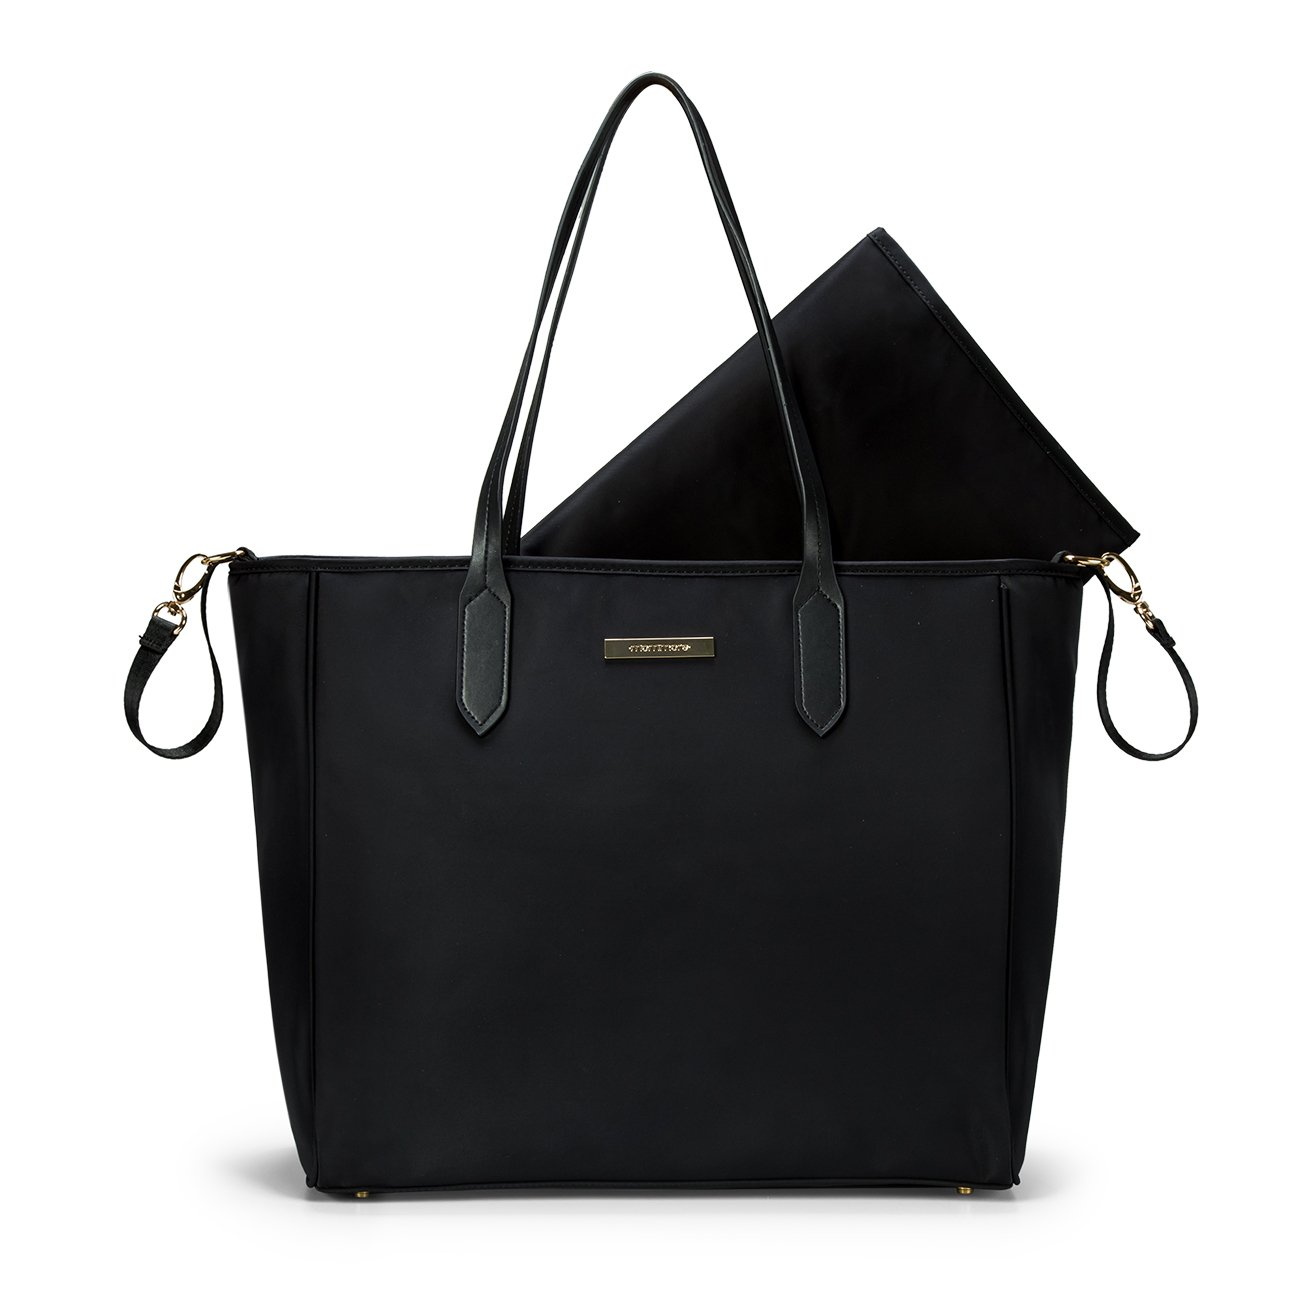 311f392b8131e Amazon.com : mommore Diaper Bag Large Totes Handbag with Changing Pad for  Baby, Black : Baby